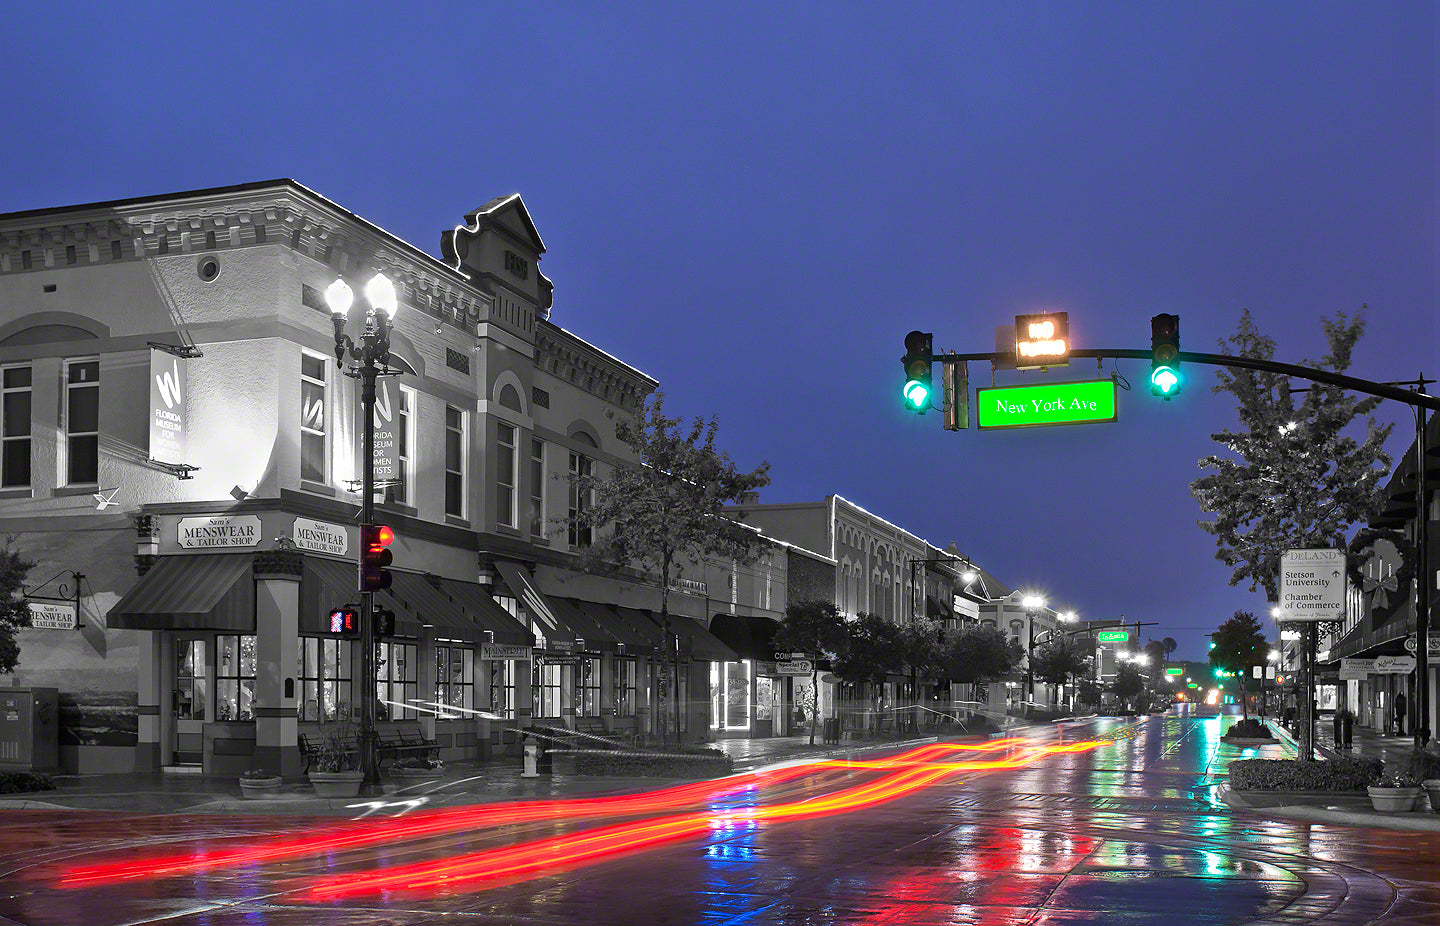 A Landscape Fine Art Photograph by Mike Ring of Downtown DeLand on a rainy morning.